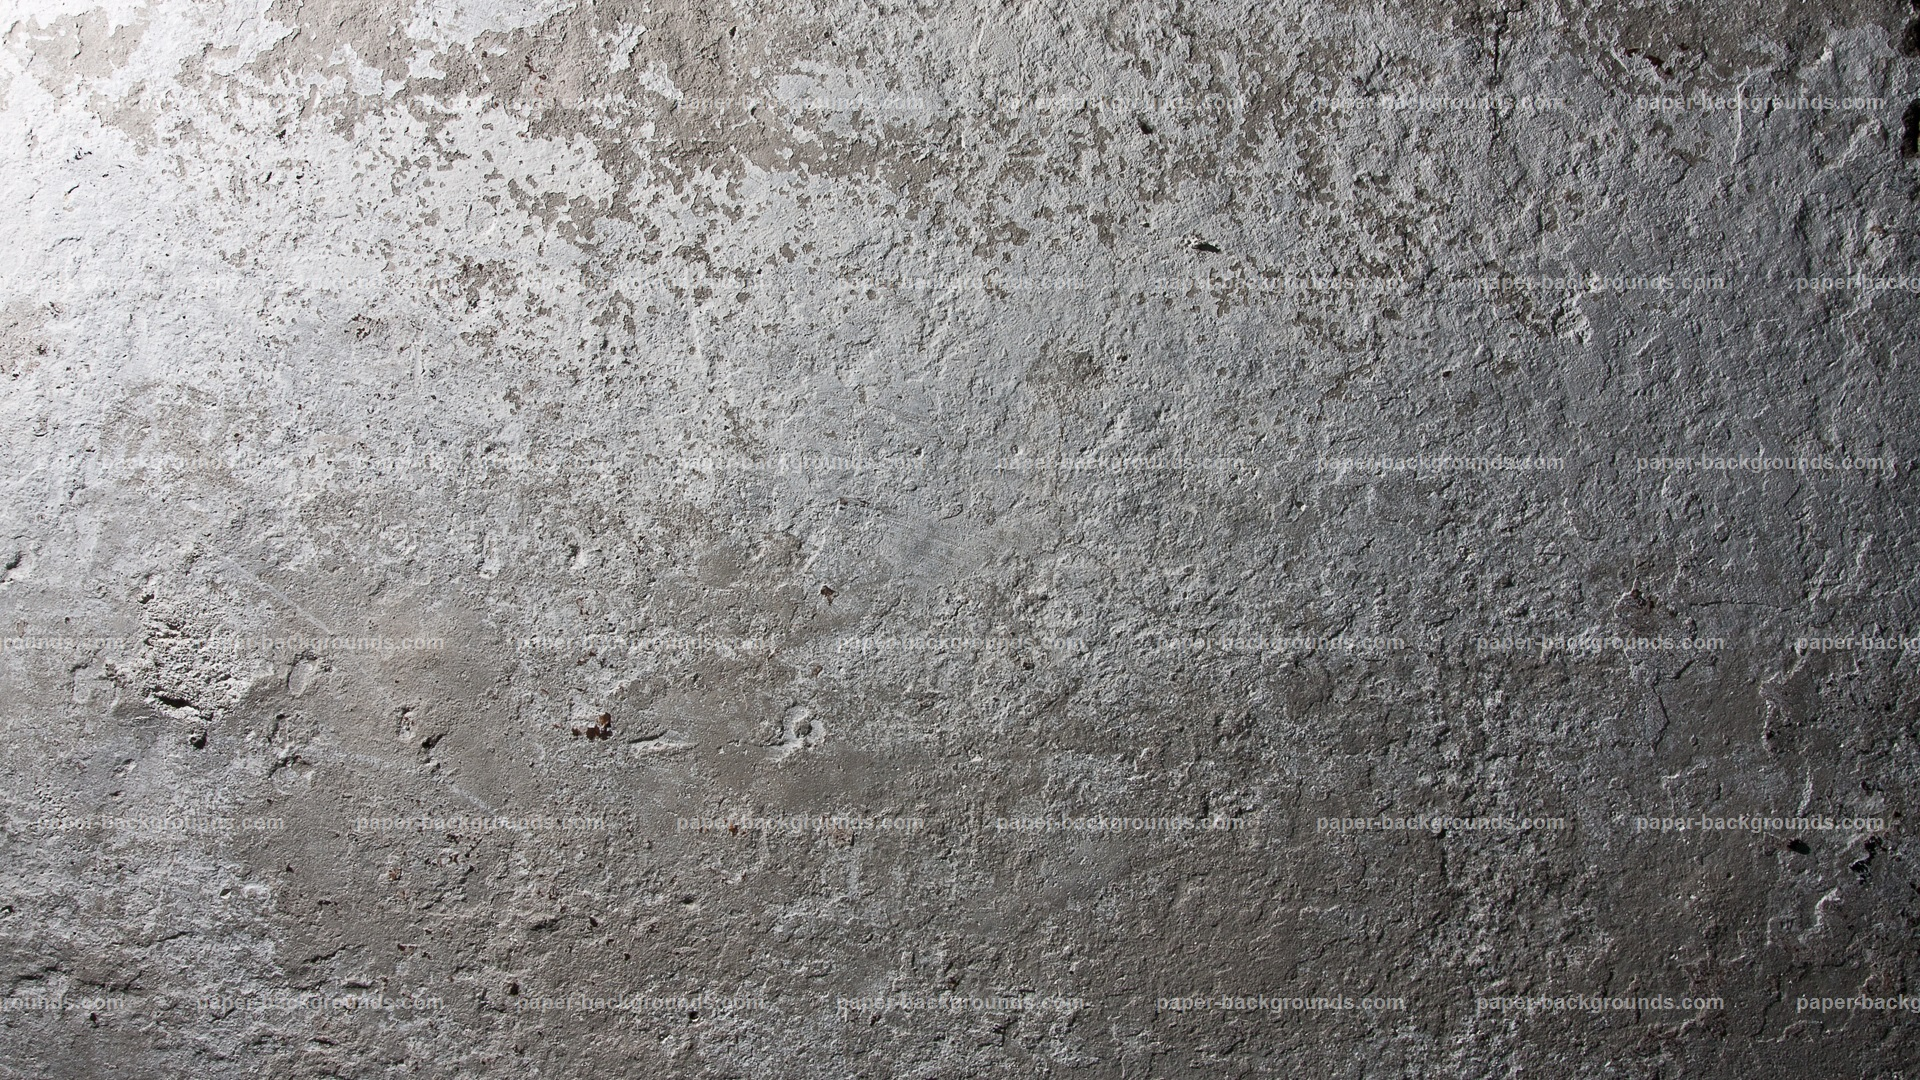 gray concrete wall background hd Paper Backgrounds 1920x1080